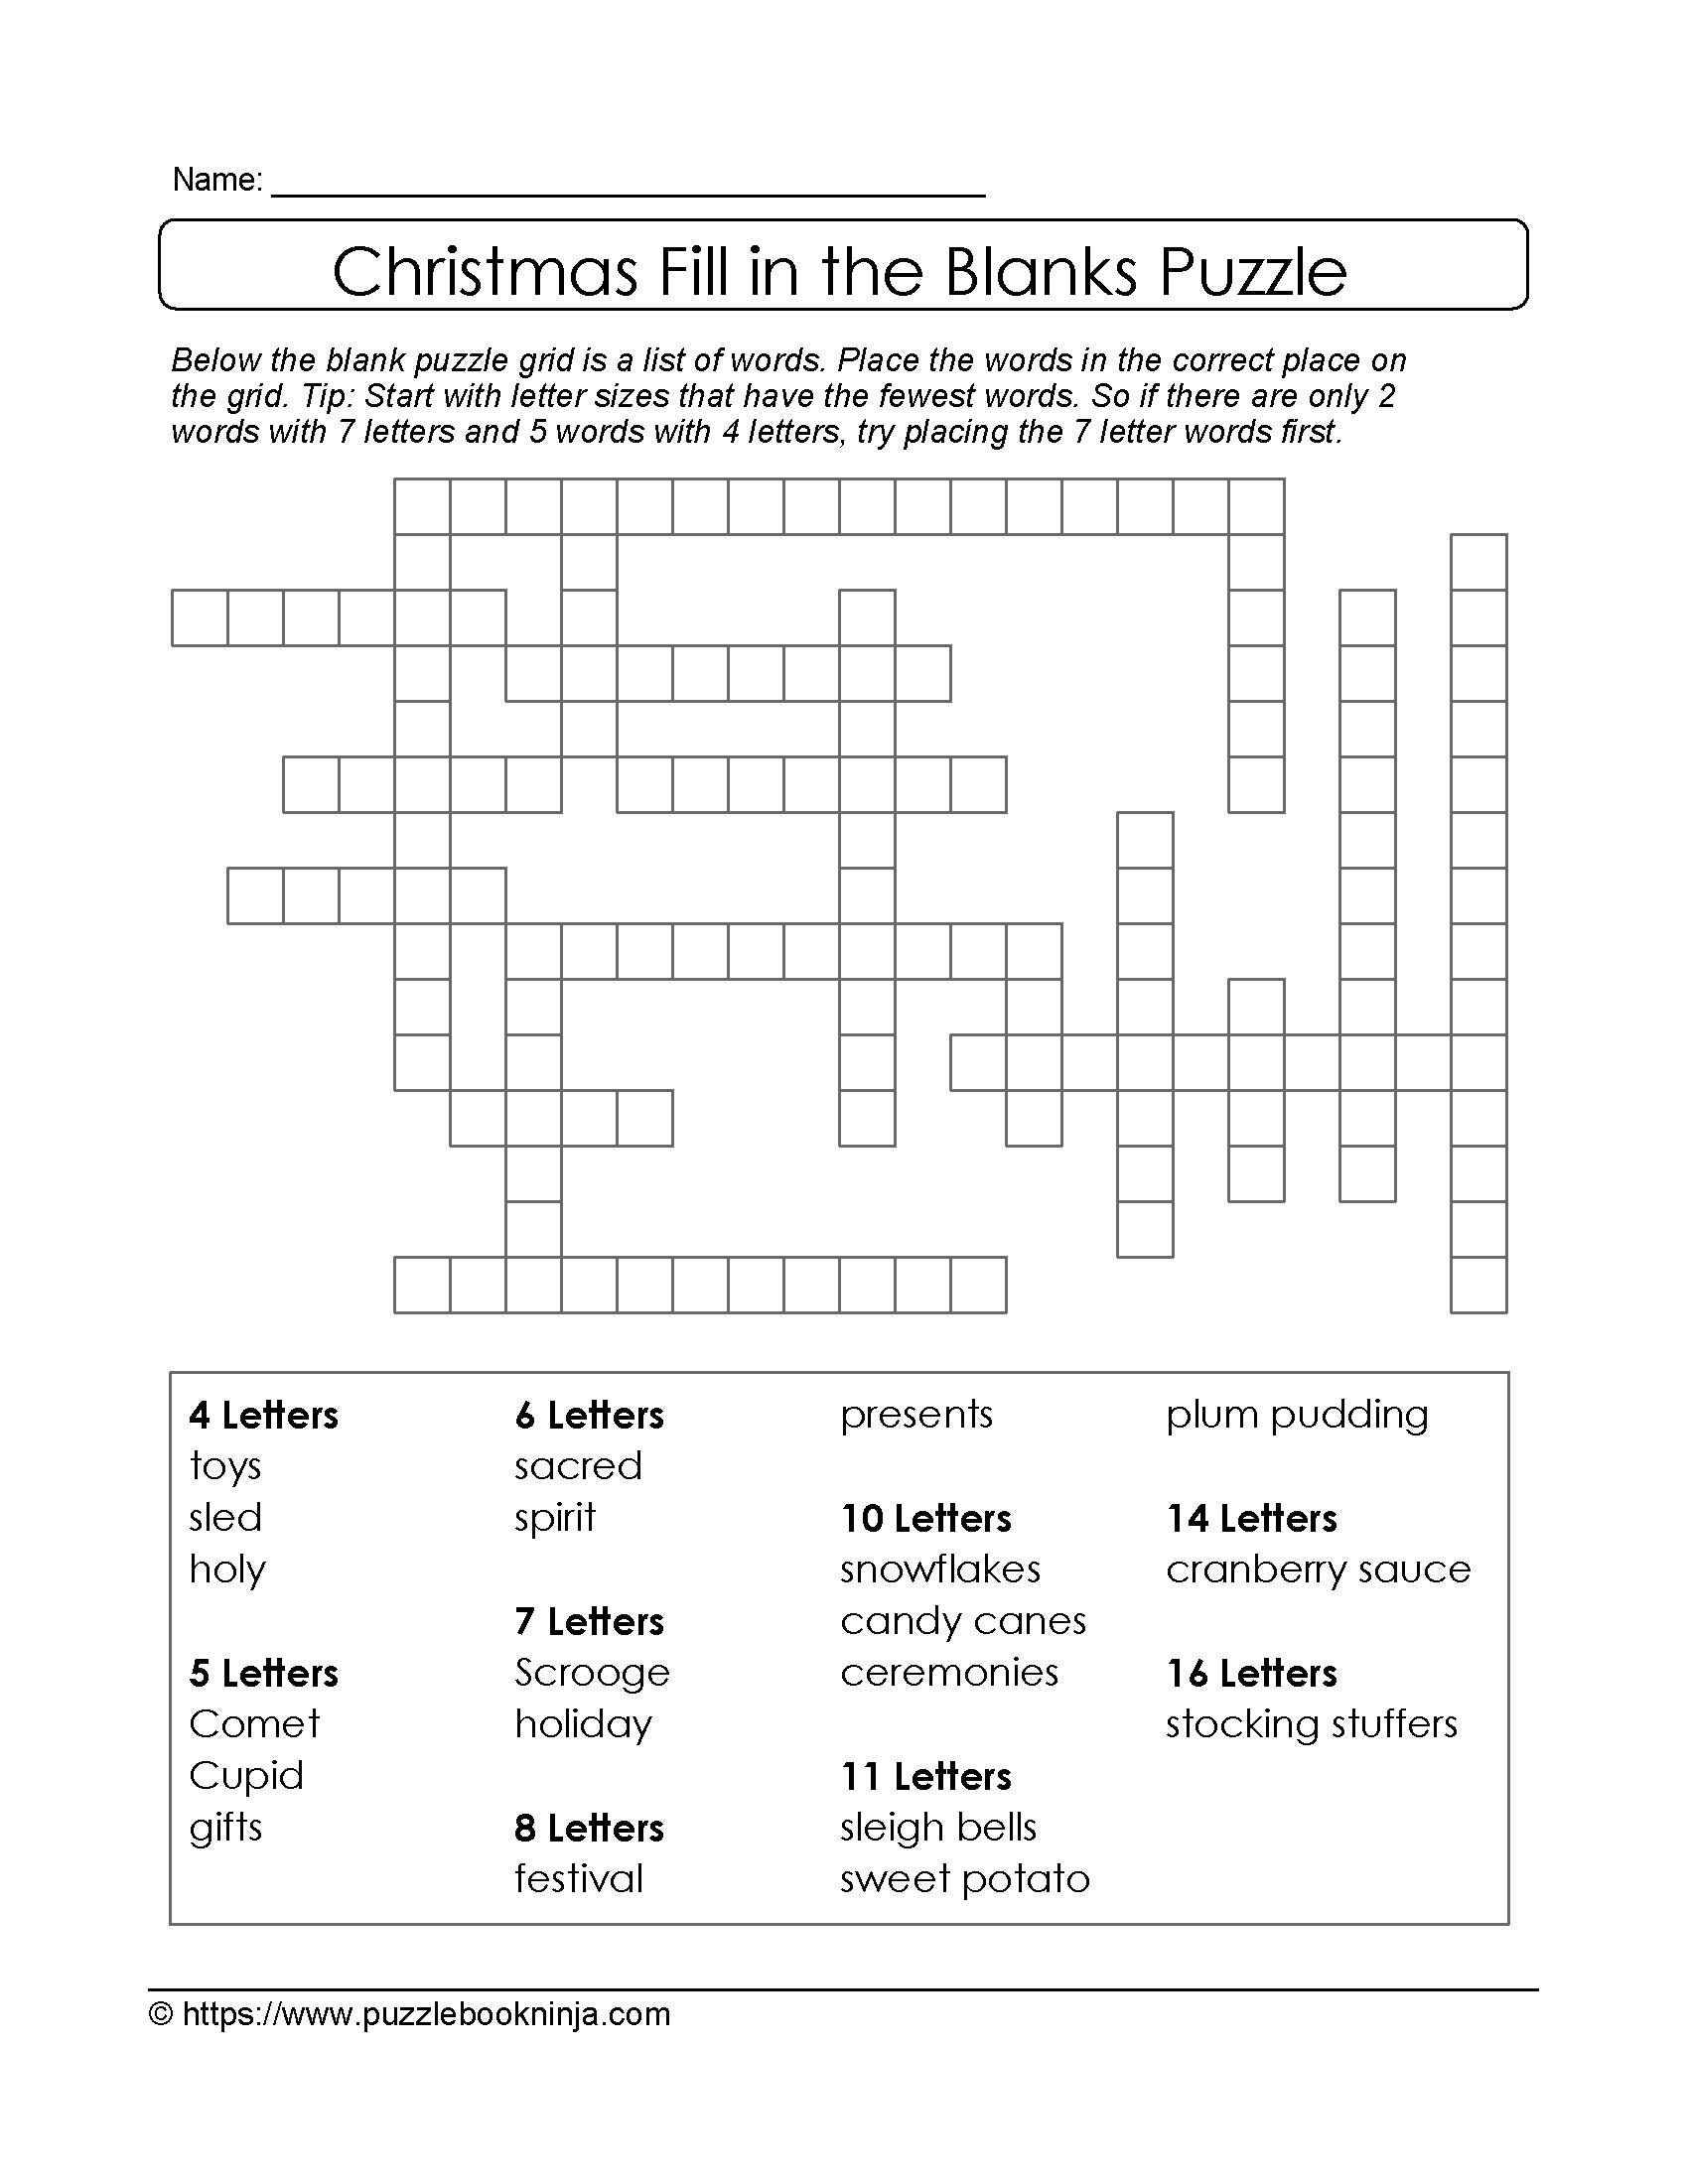 Puzzles To Print. Free Xmas Theme Fill In The Blanks Puzzle - Printable Holiday Crossword Puzzles For Adults With Answers